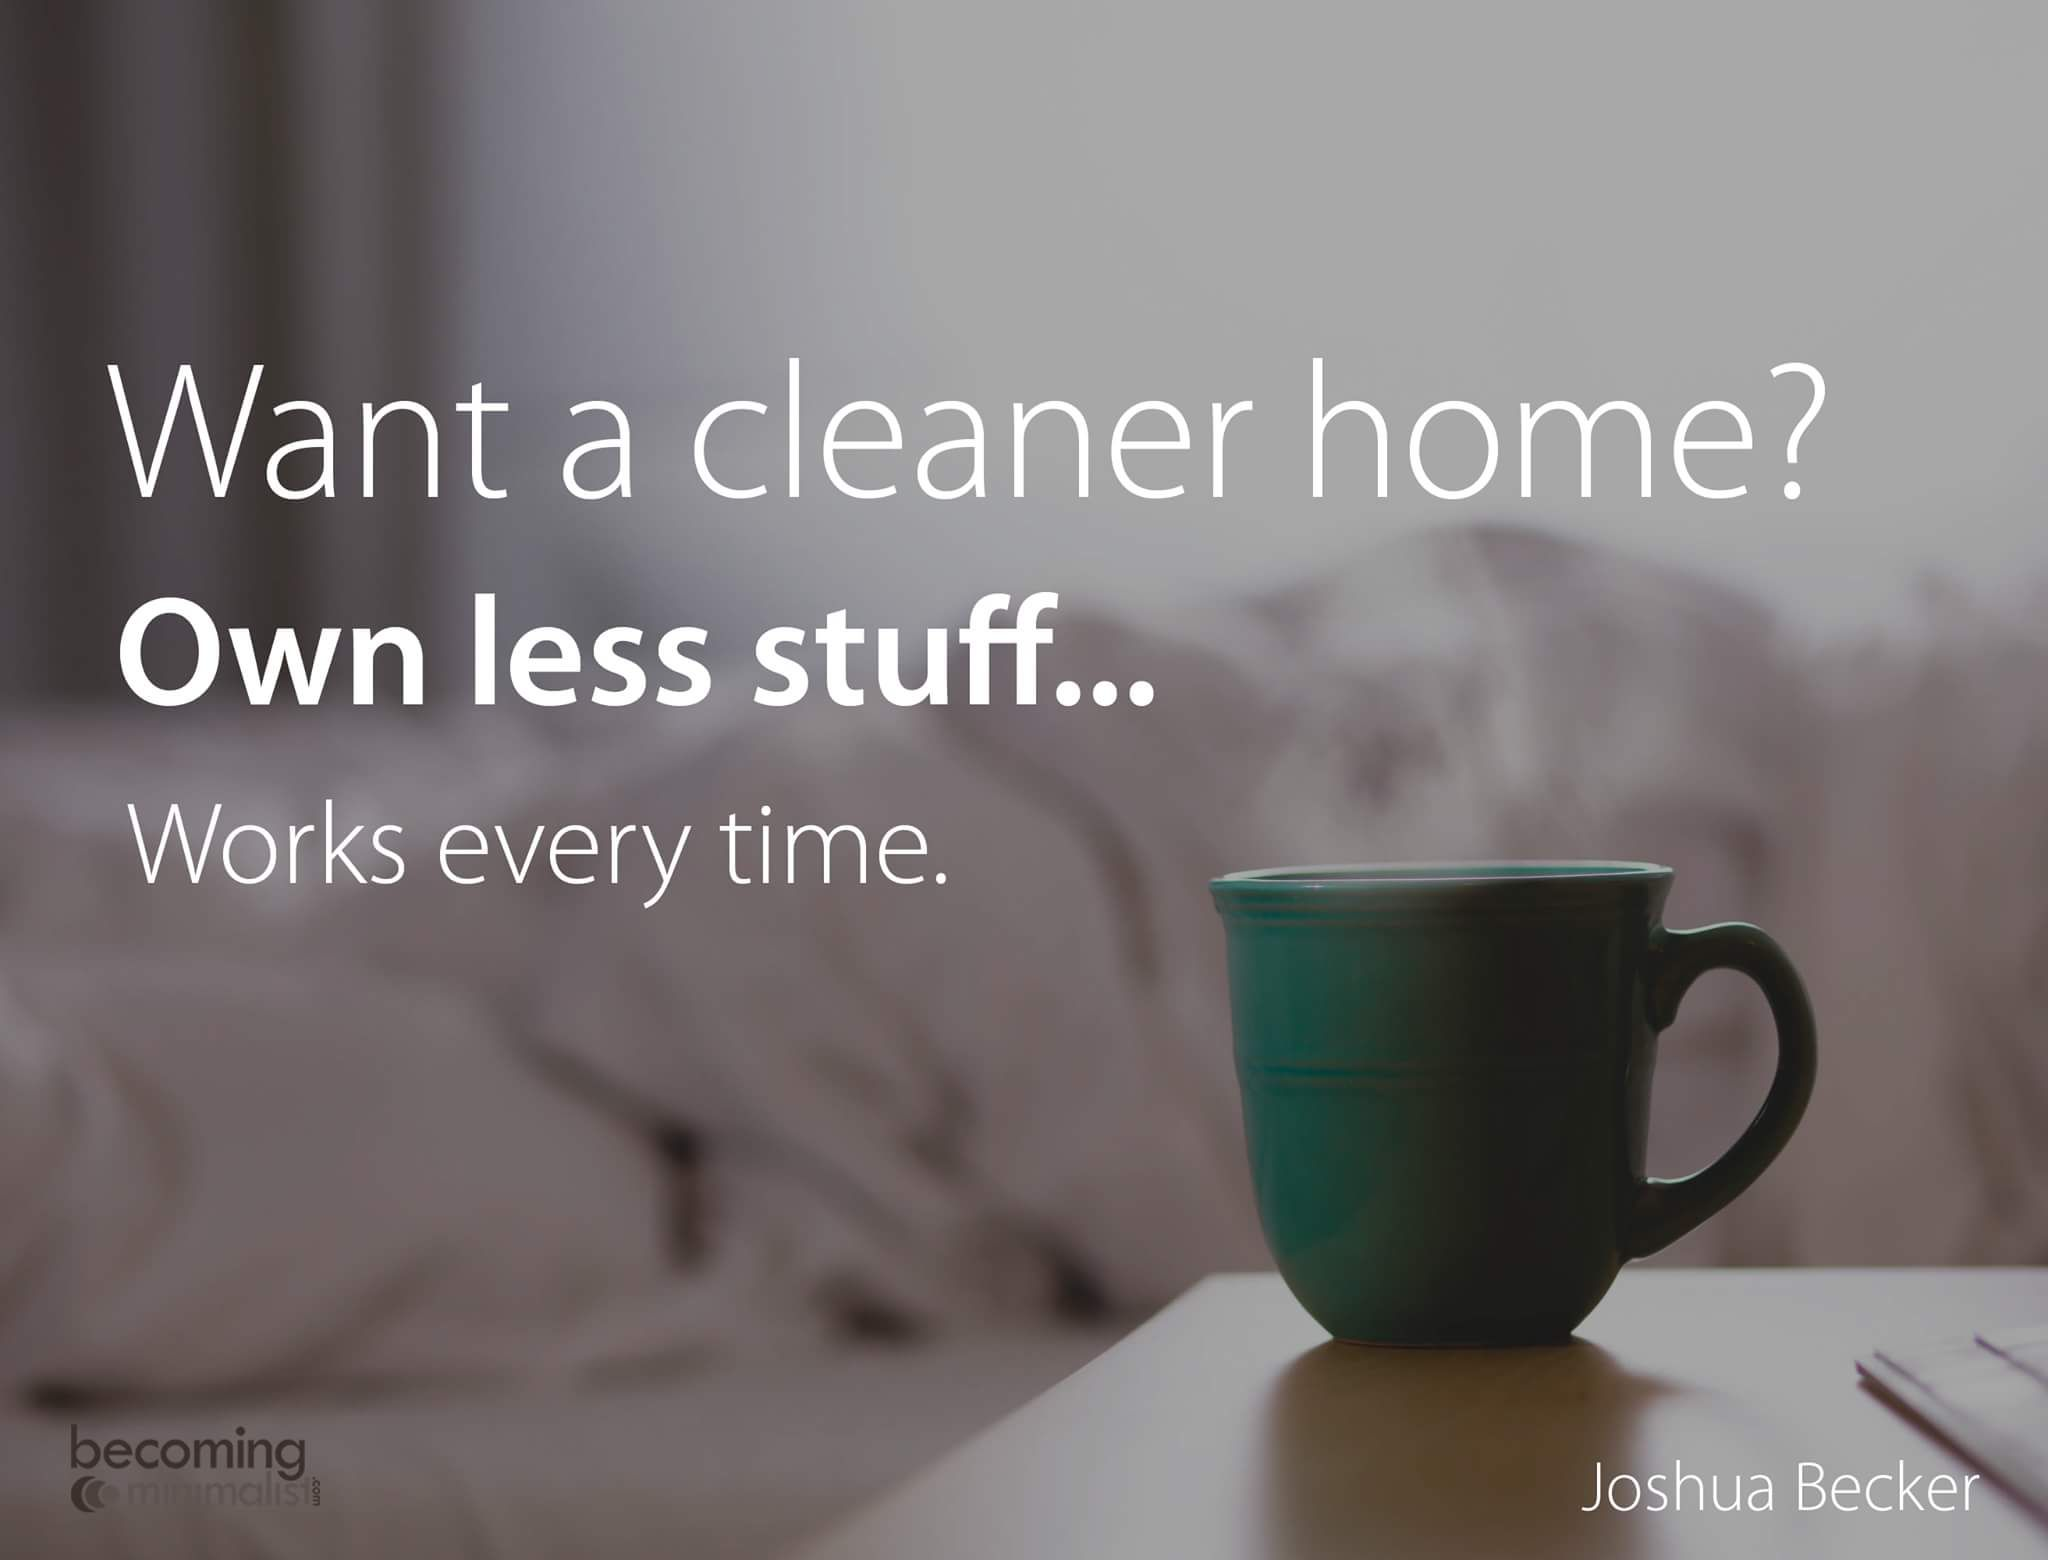 declutter. simplify. decluttering tips and minimalist life ideas for organizing your home. Minimalism inspiration and tutorials. How to be a minimalist. Simple living. Tips for a cleaner home.